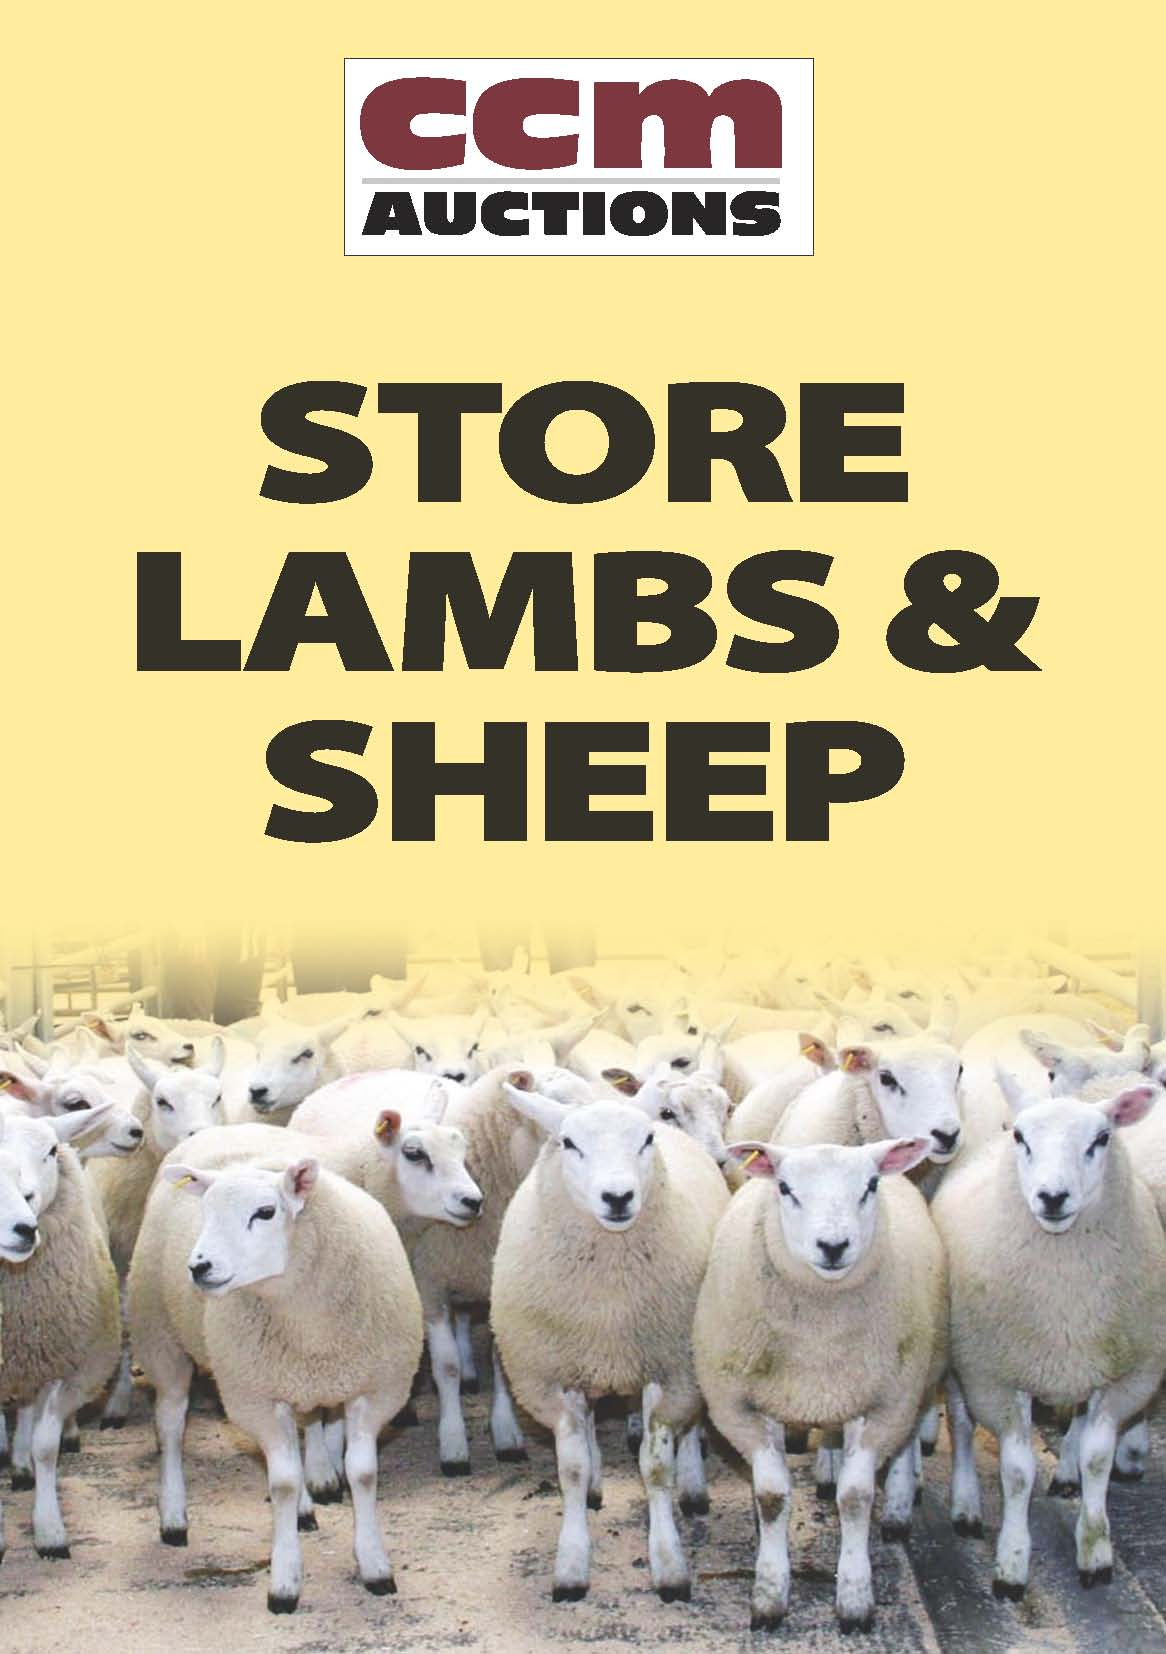 STORE LAMBS - WEDNESDAY 10TH DECEMBER 2014